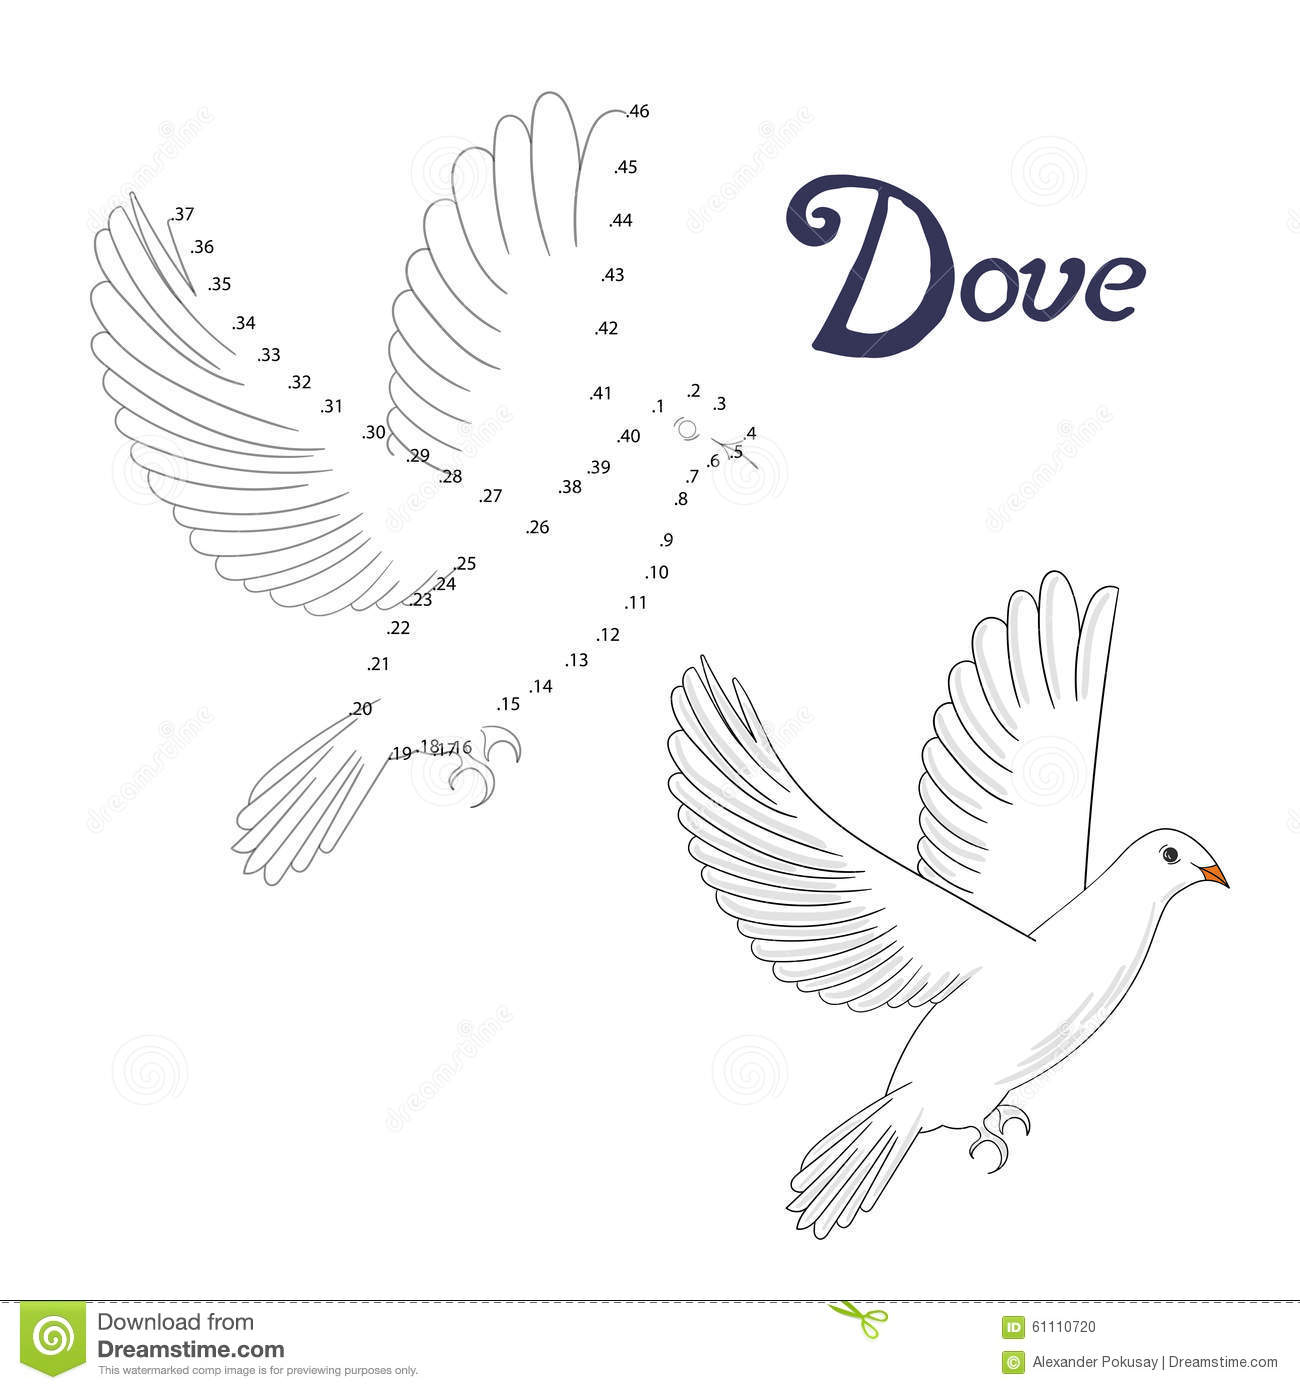 how to draw a dove cartoon